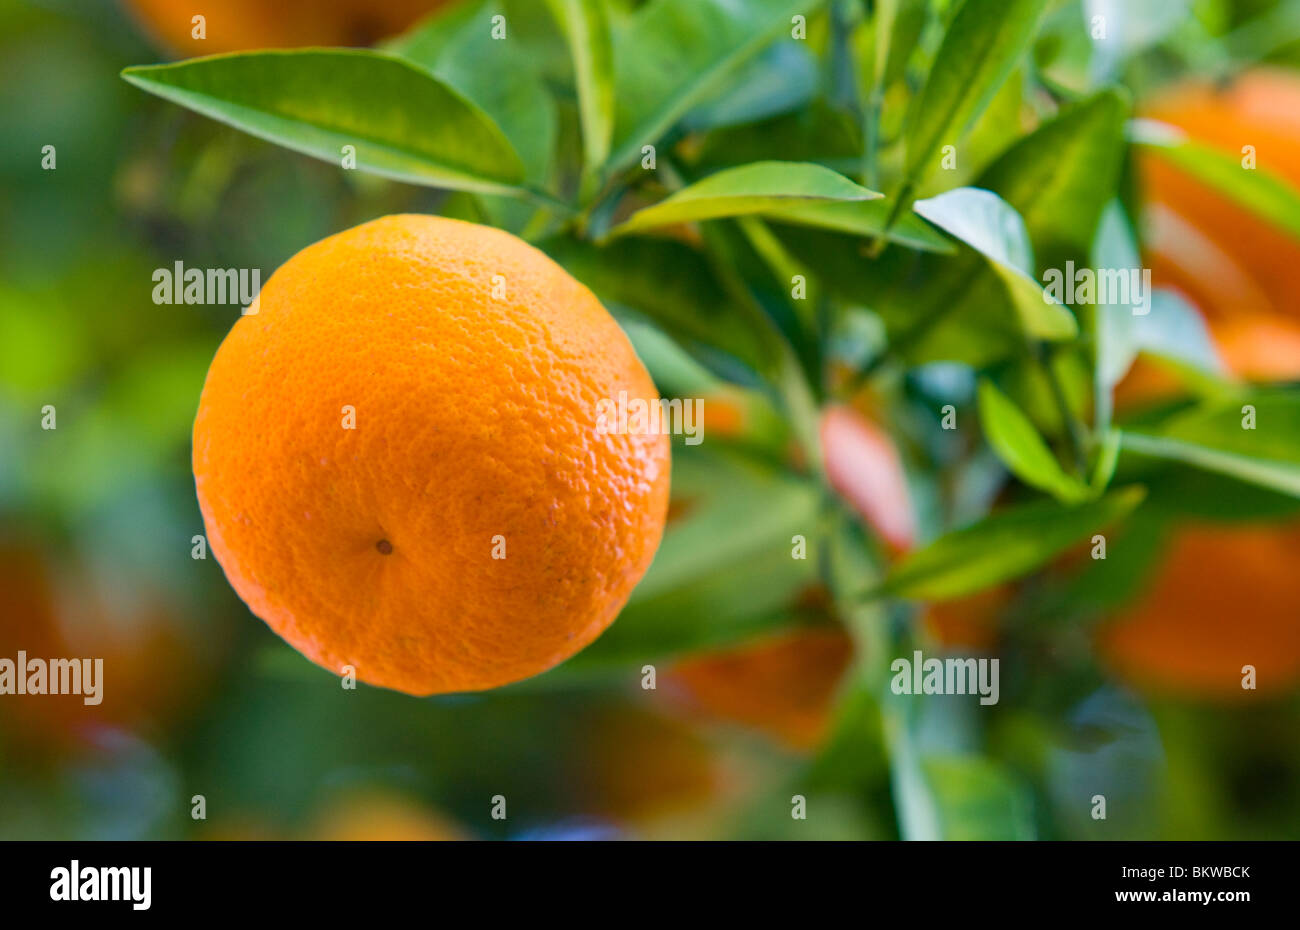 Andalusia, Seville, Orange - Stock Image